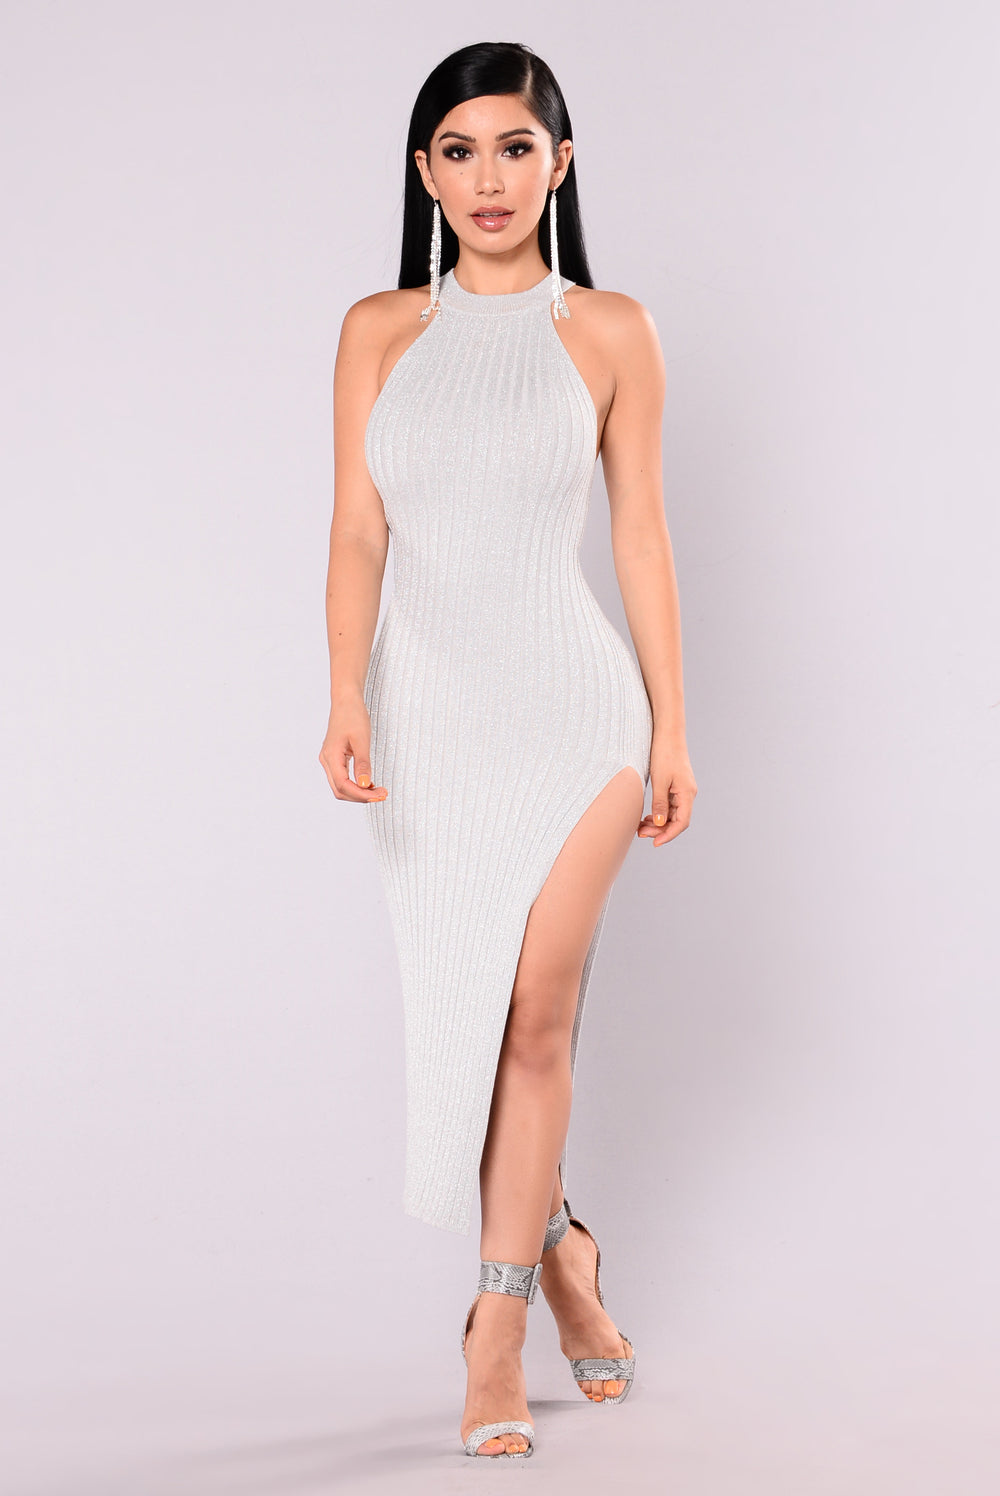 Lorelei Lurex Dress - Silver